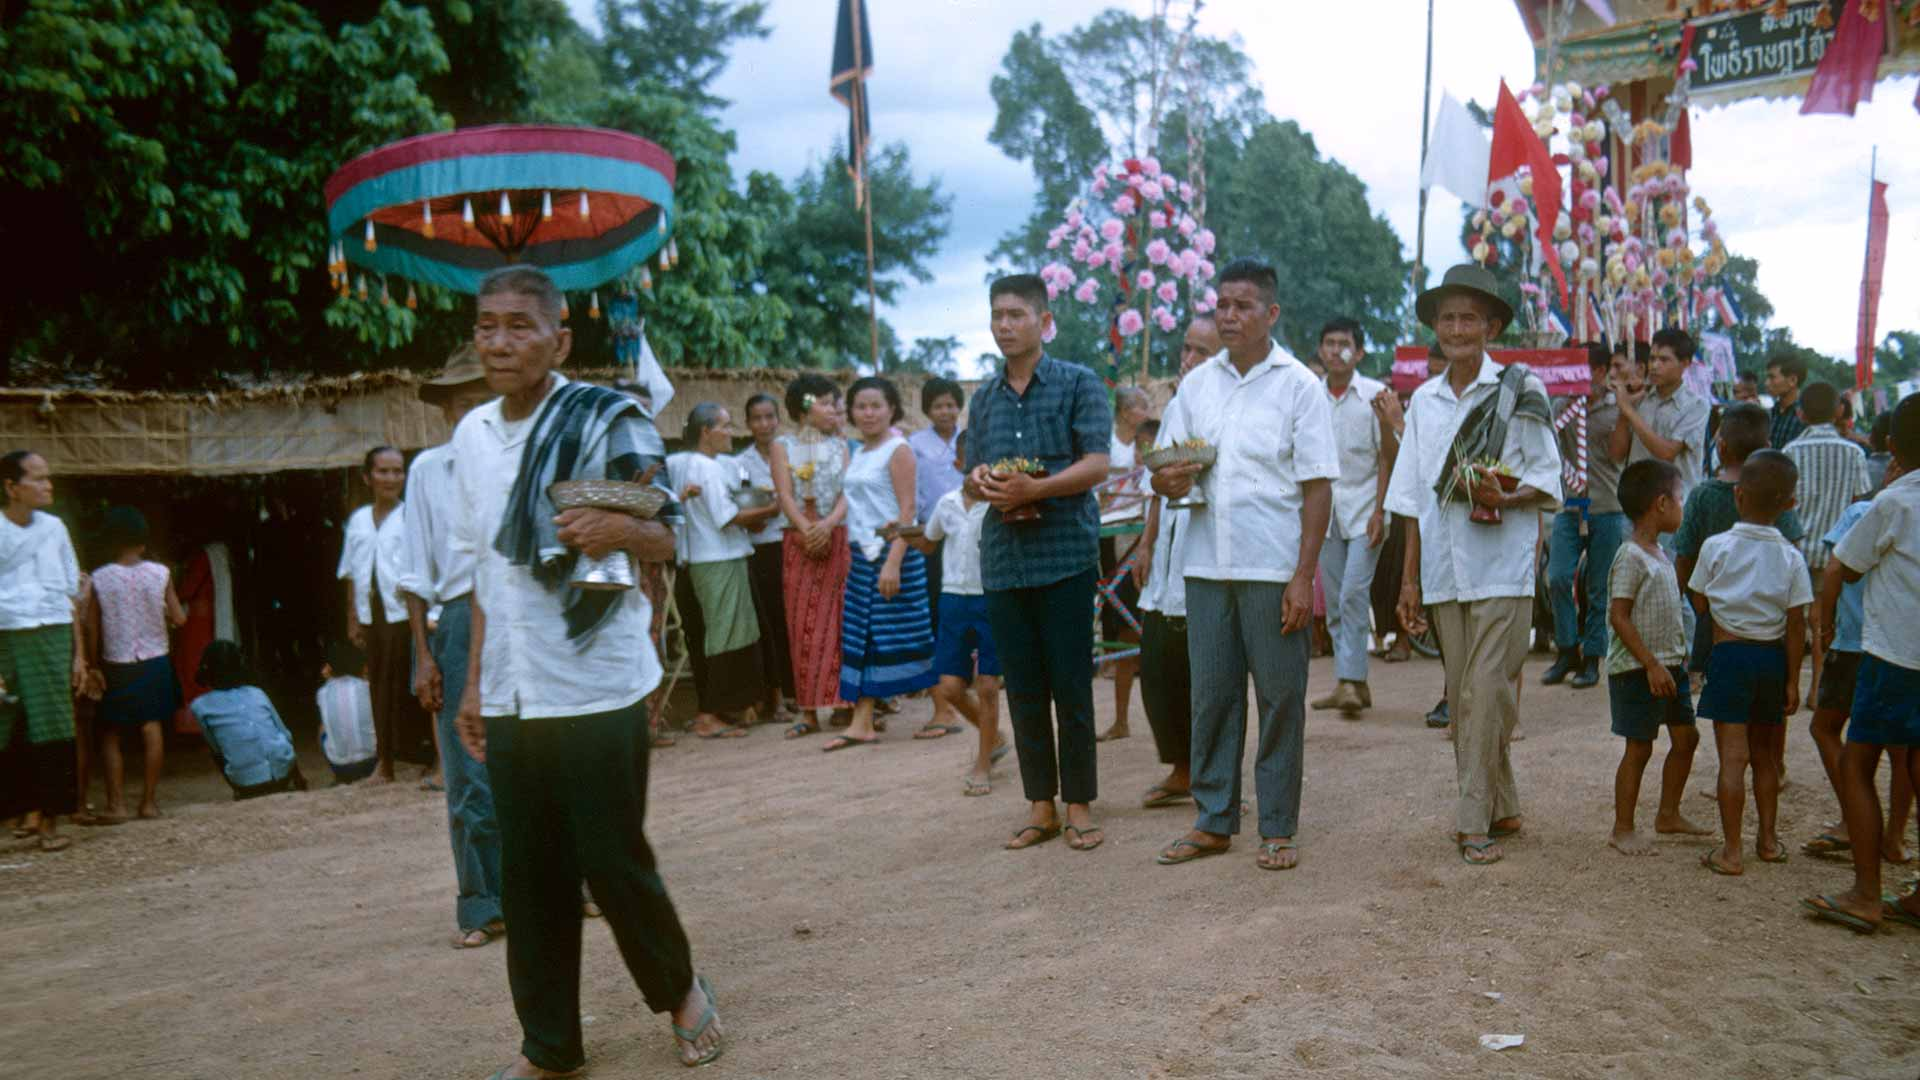 men walk down a dirt road carrying small gifts